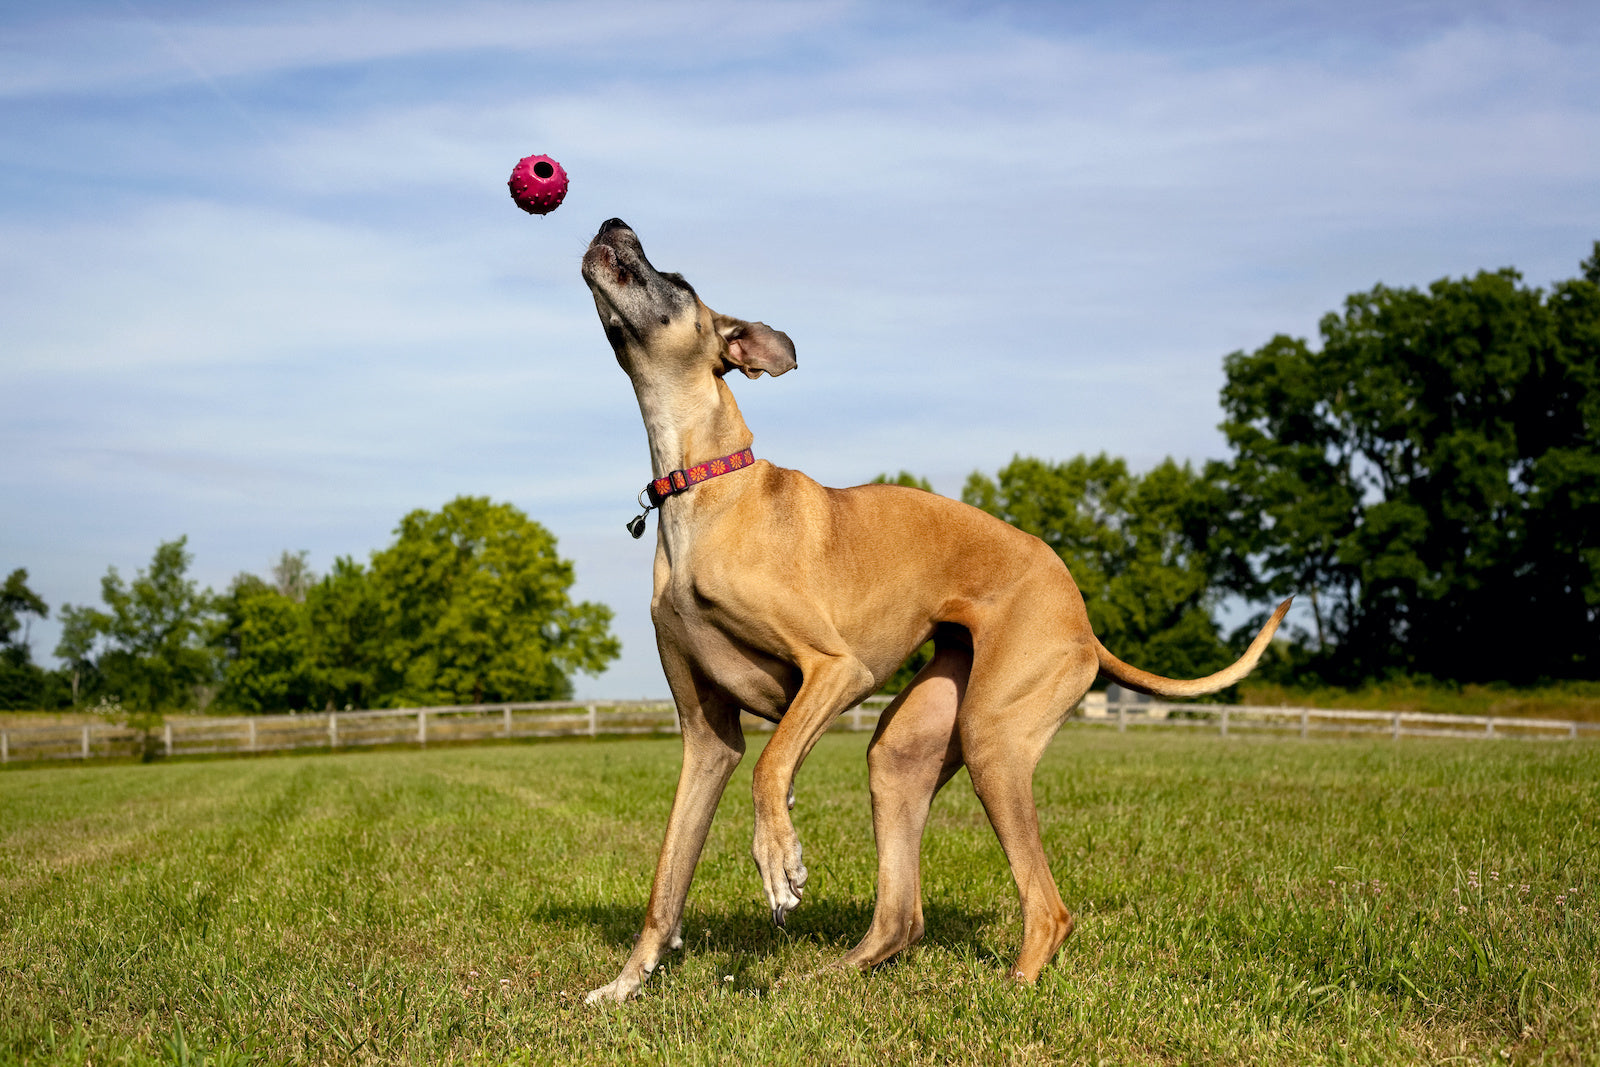 Dog has bad gas suddenly: A Great Dane catching a ball